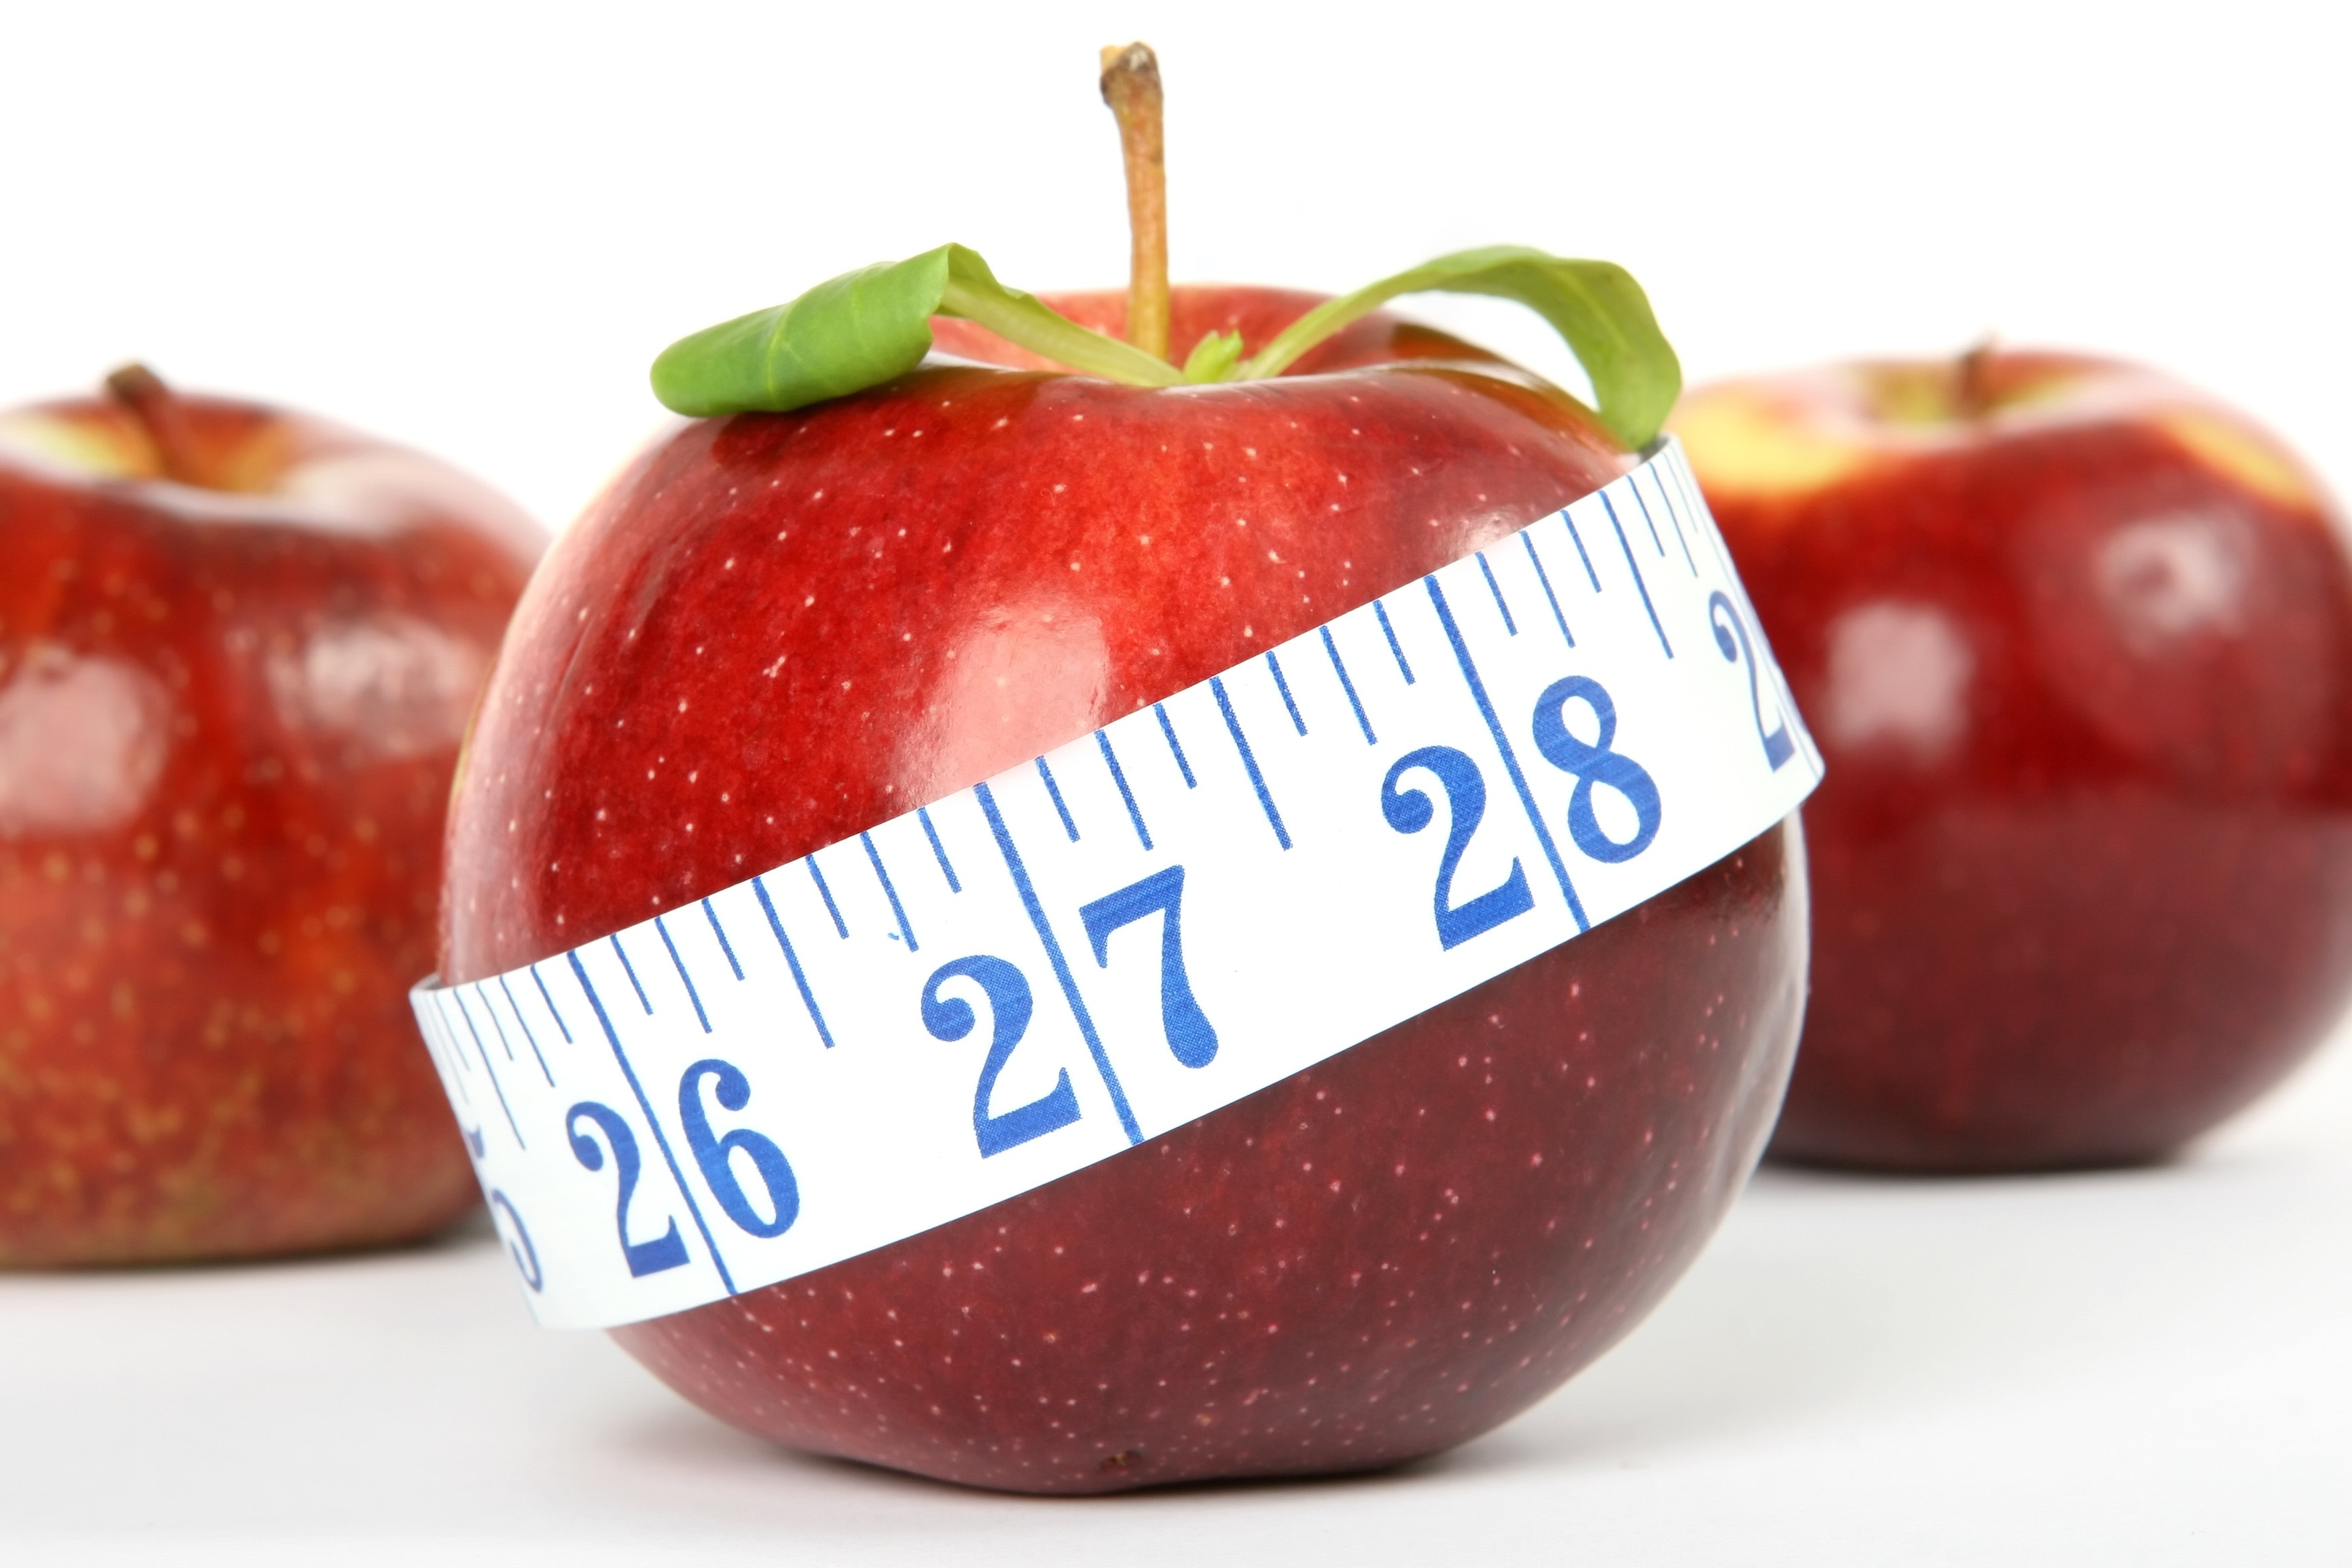 measuring your body for weight loss results